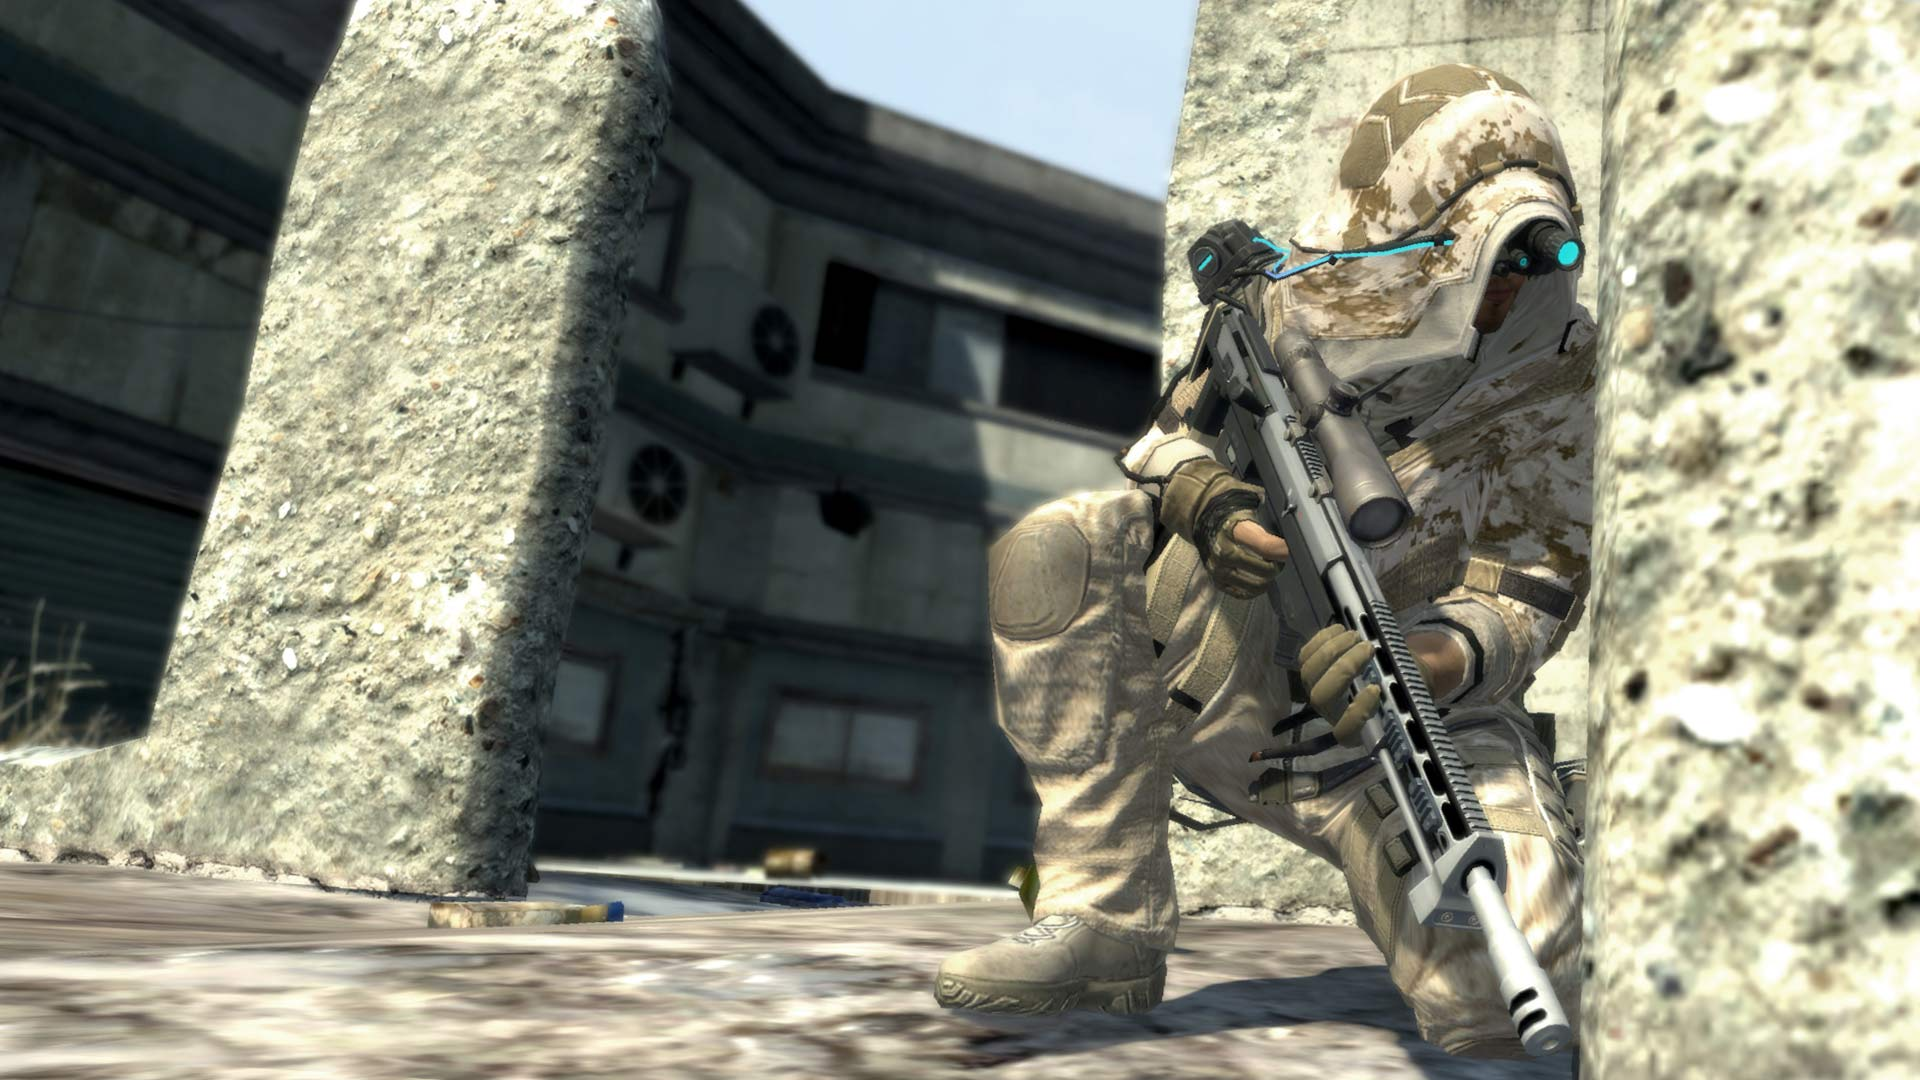 Room Cover Ghost Recon Ghost Recon Future Soldier Wii: Ghost Recon Online Going F2P On PC This Summer – Video